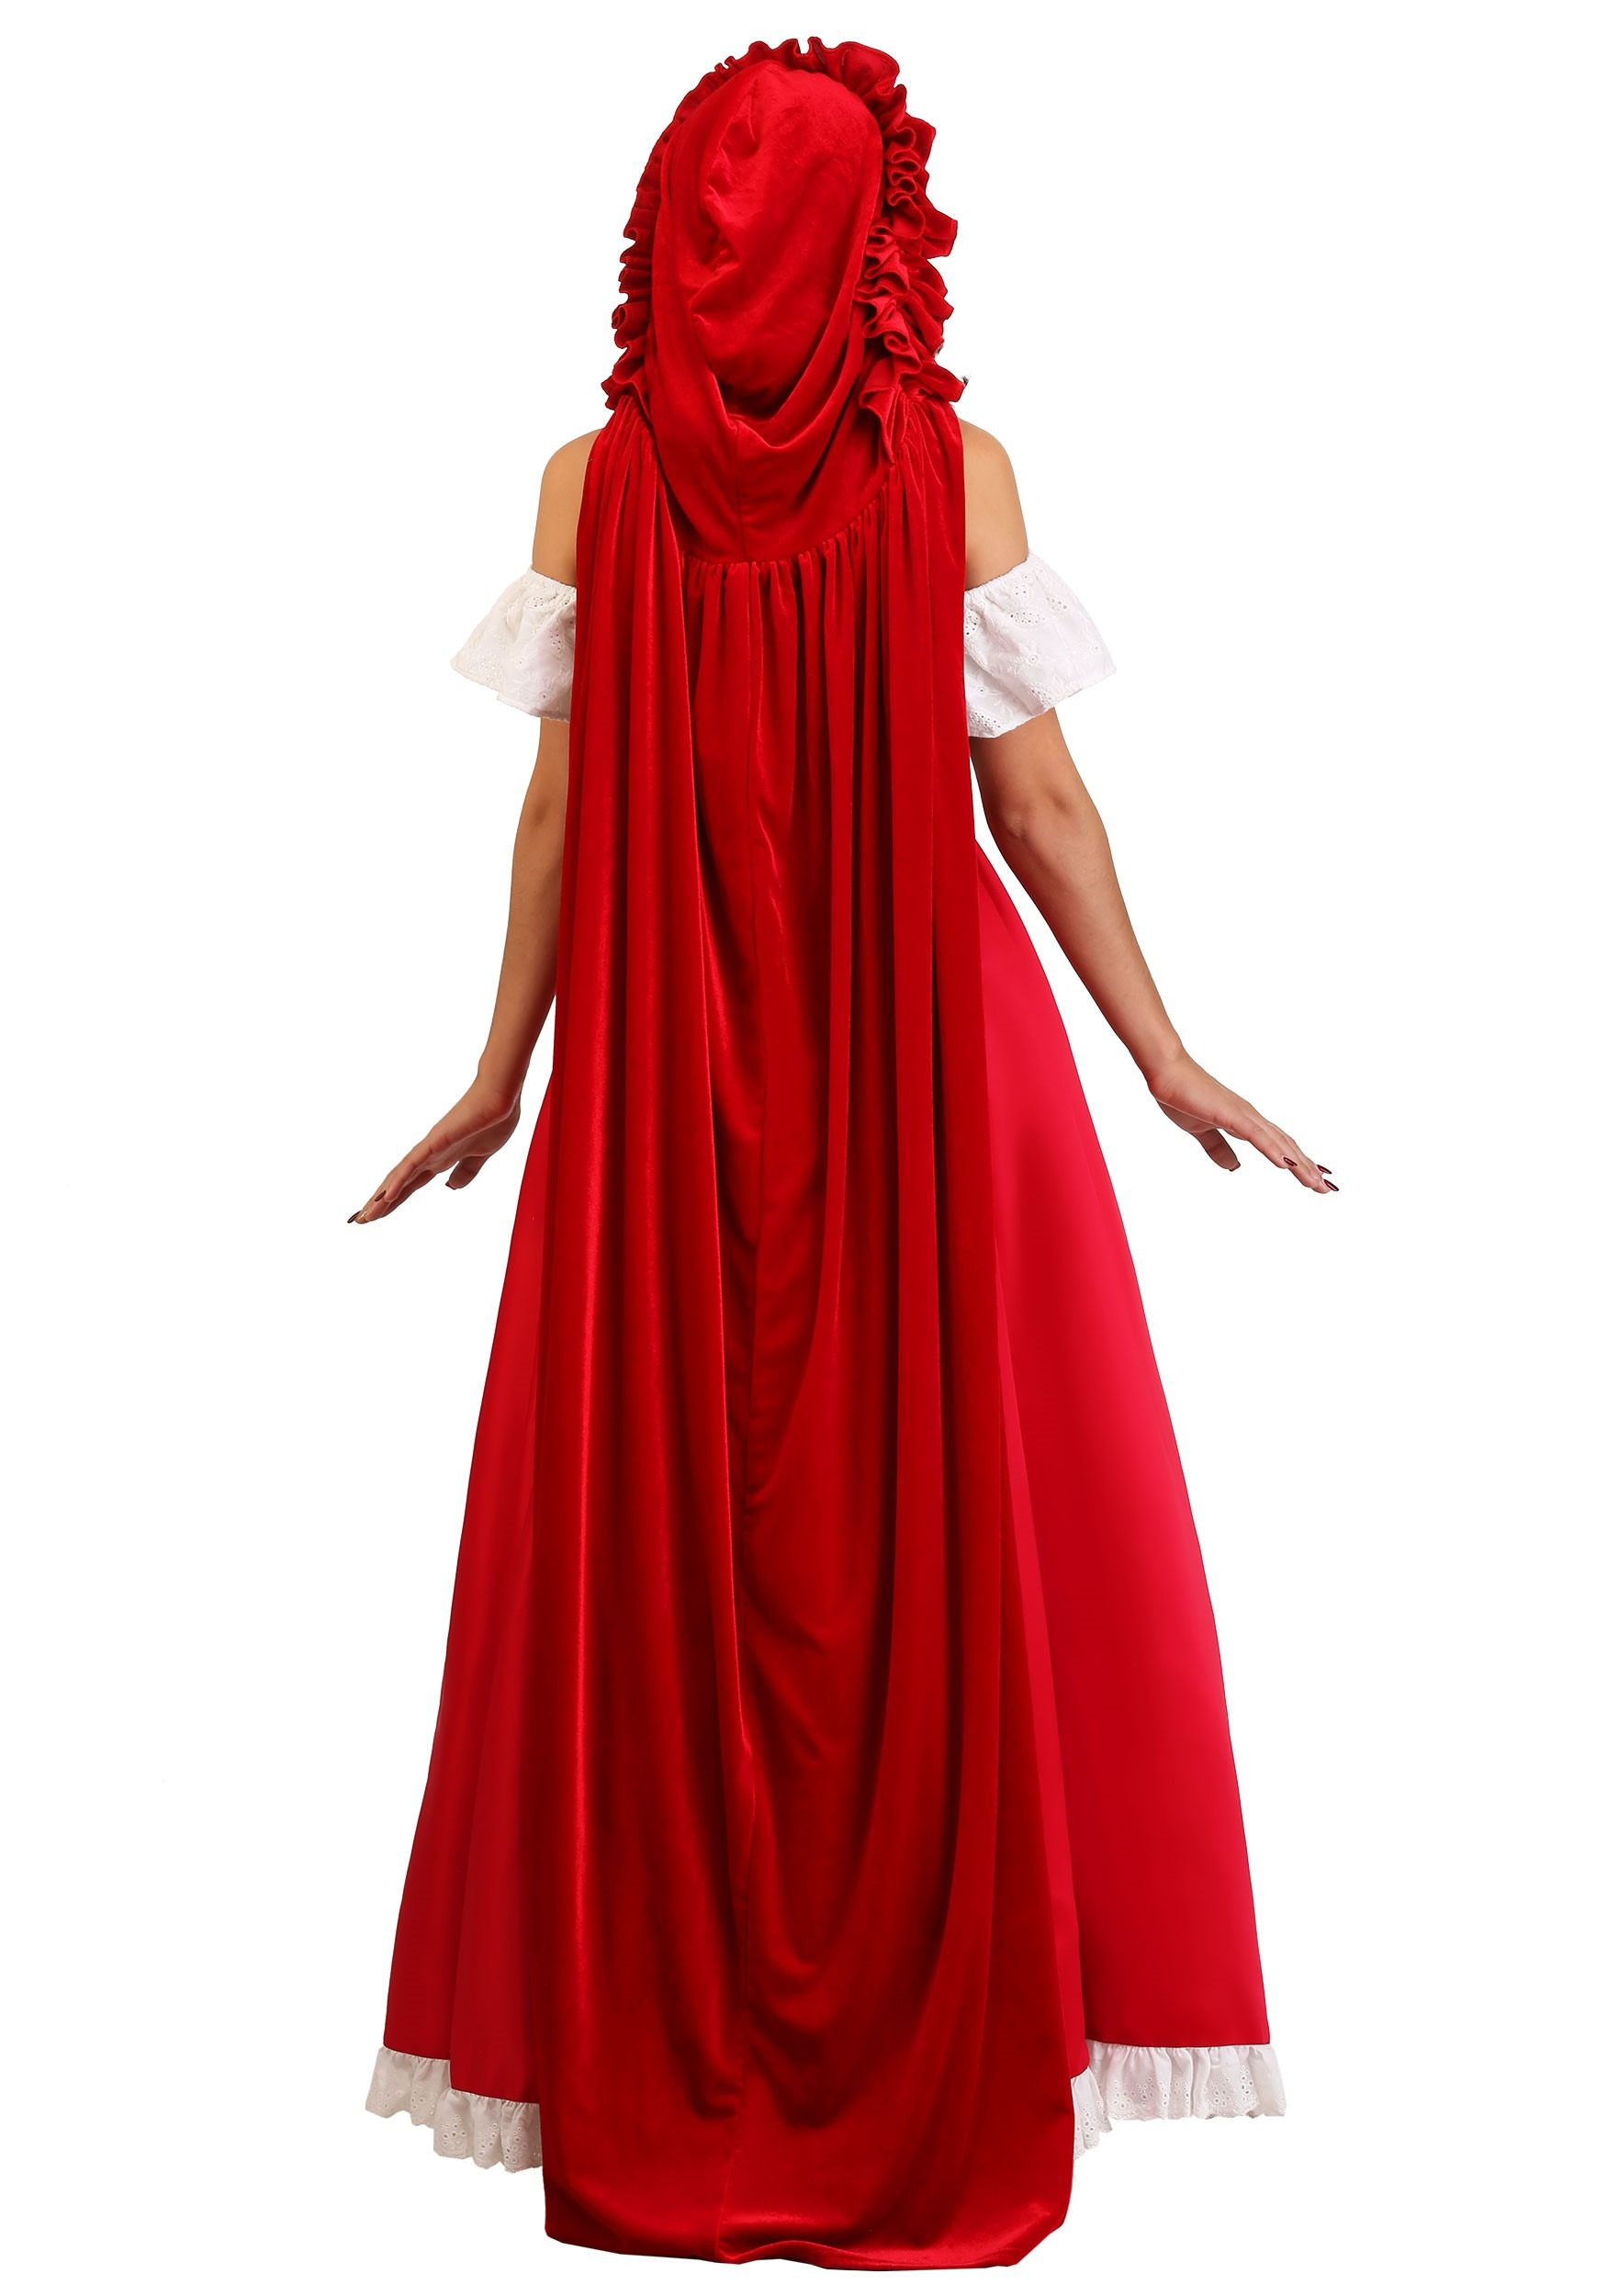 Deluxe Red Riding Hood Women S Costume